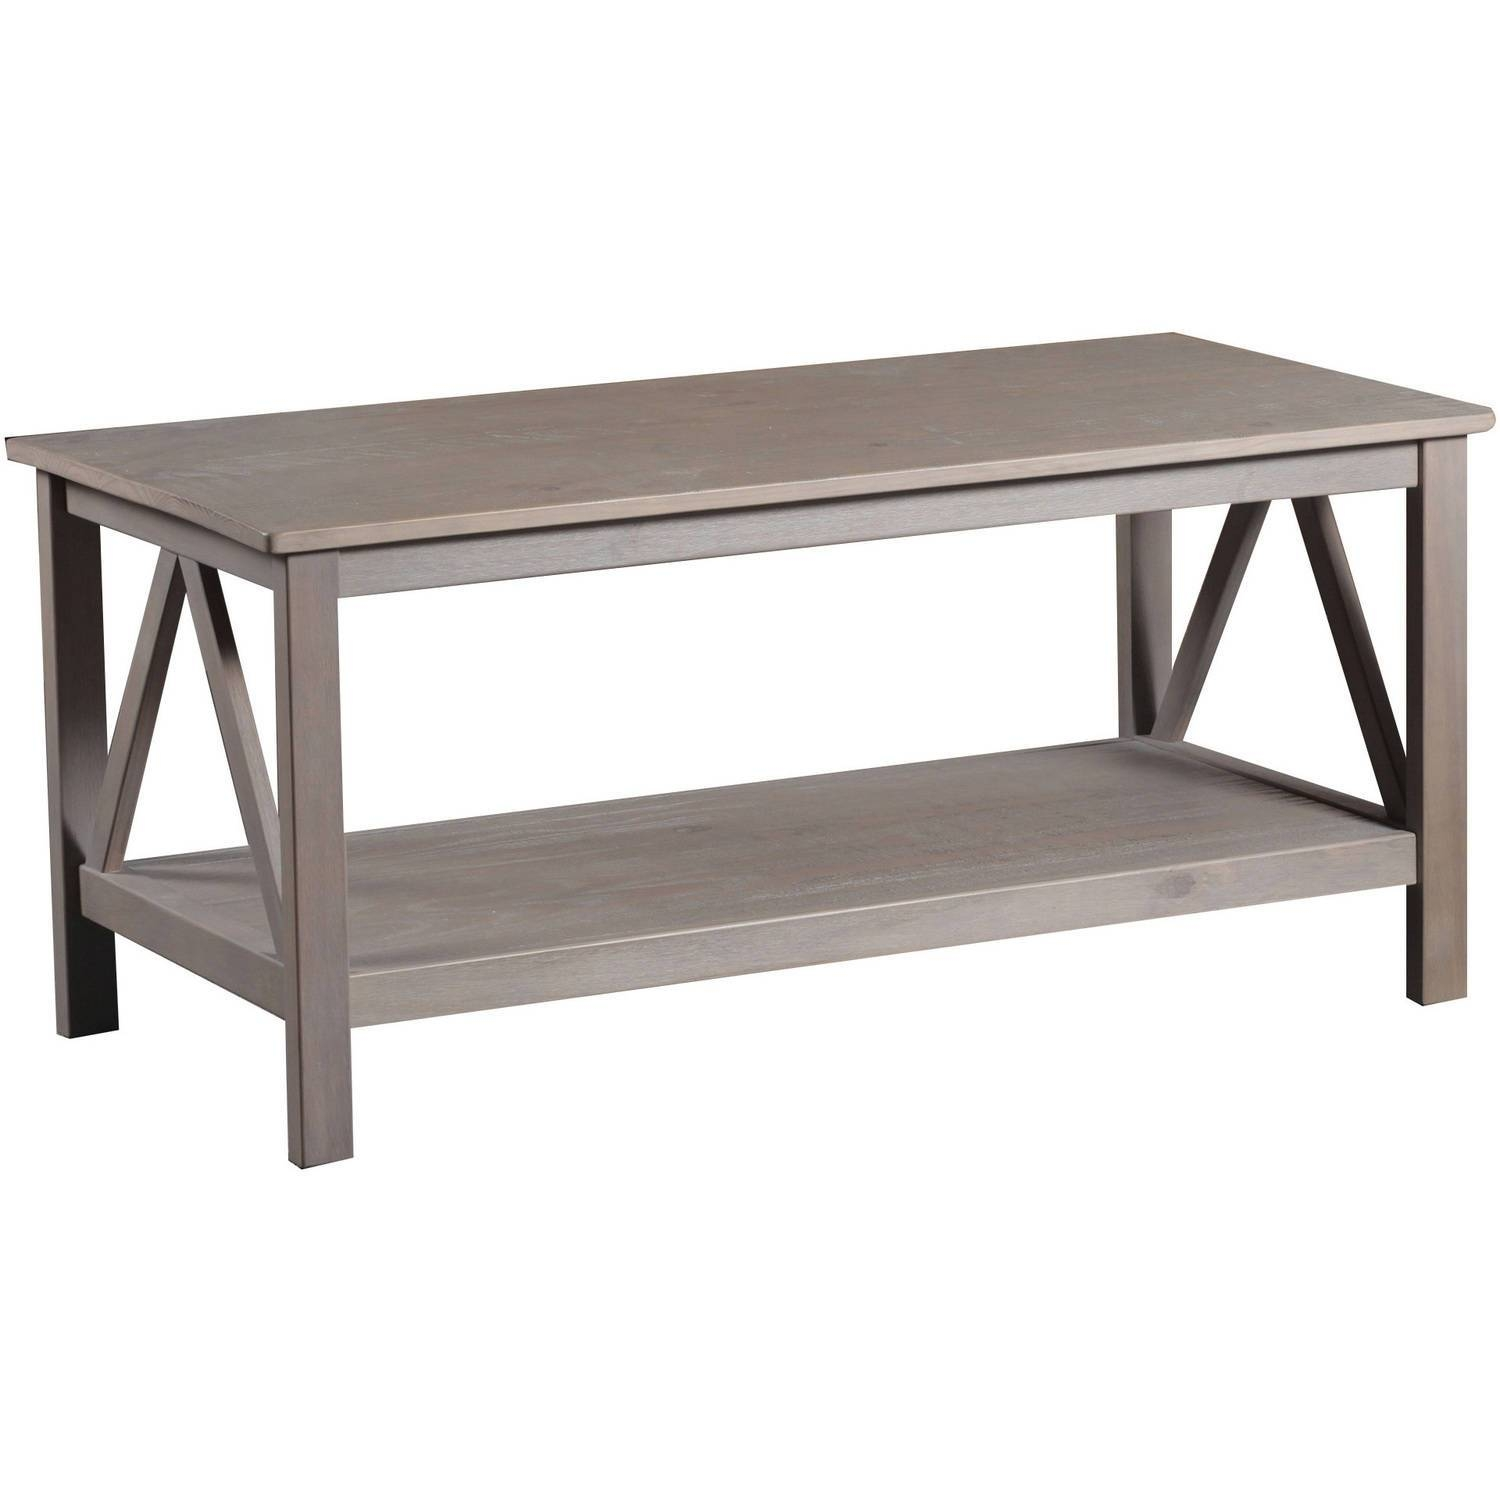 Linon Titian Coffee Table, Rustic Gray - Walmart with Grey Coffee Tables (Image 26 of 30)